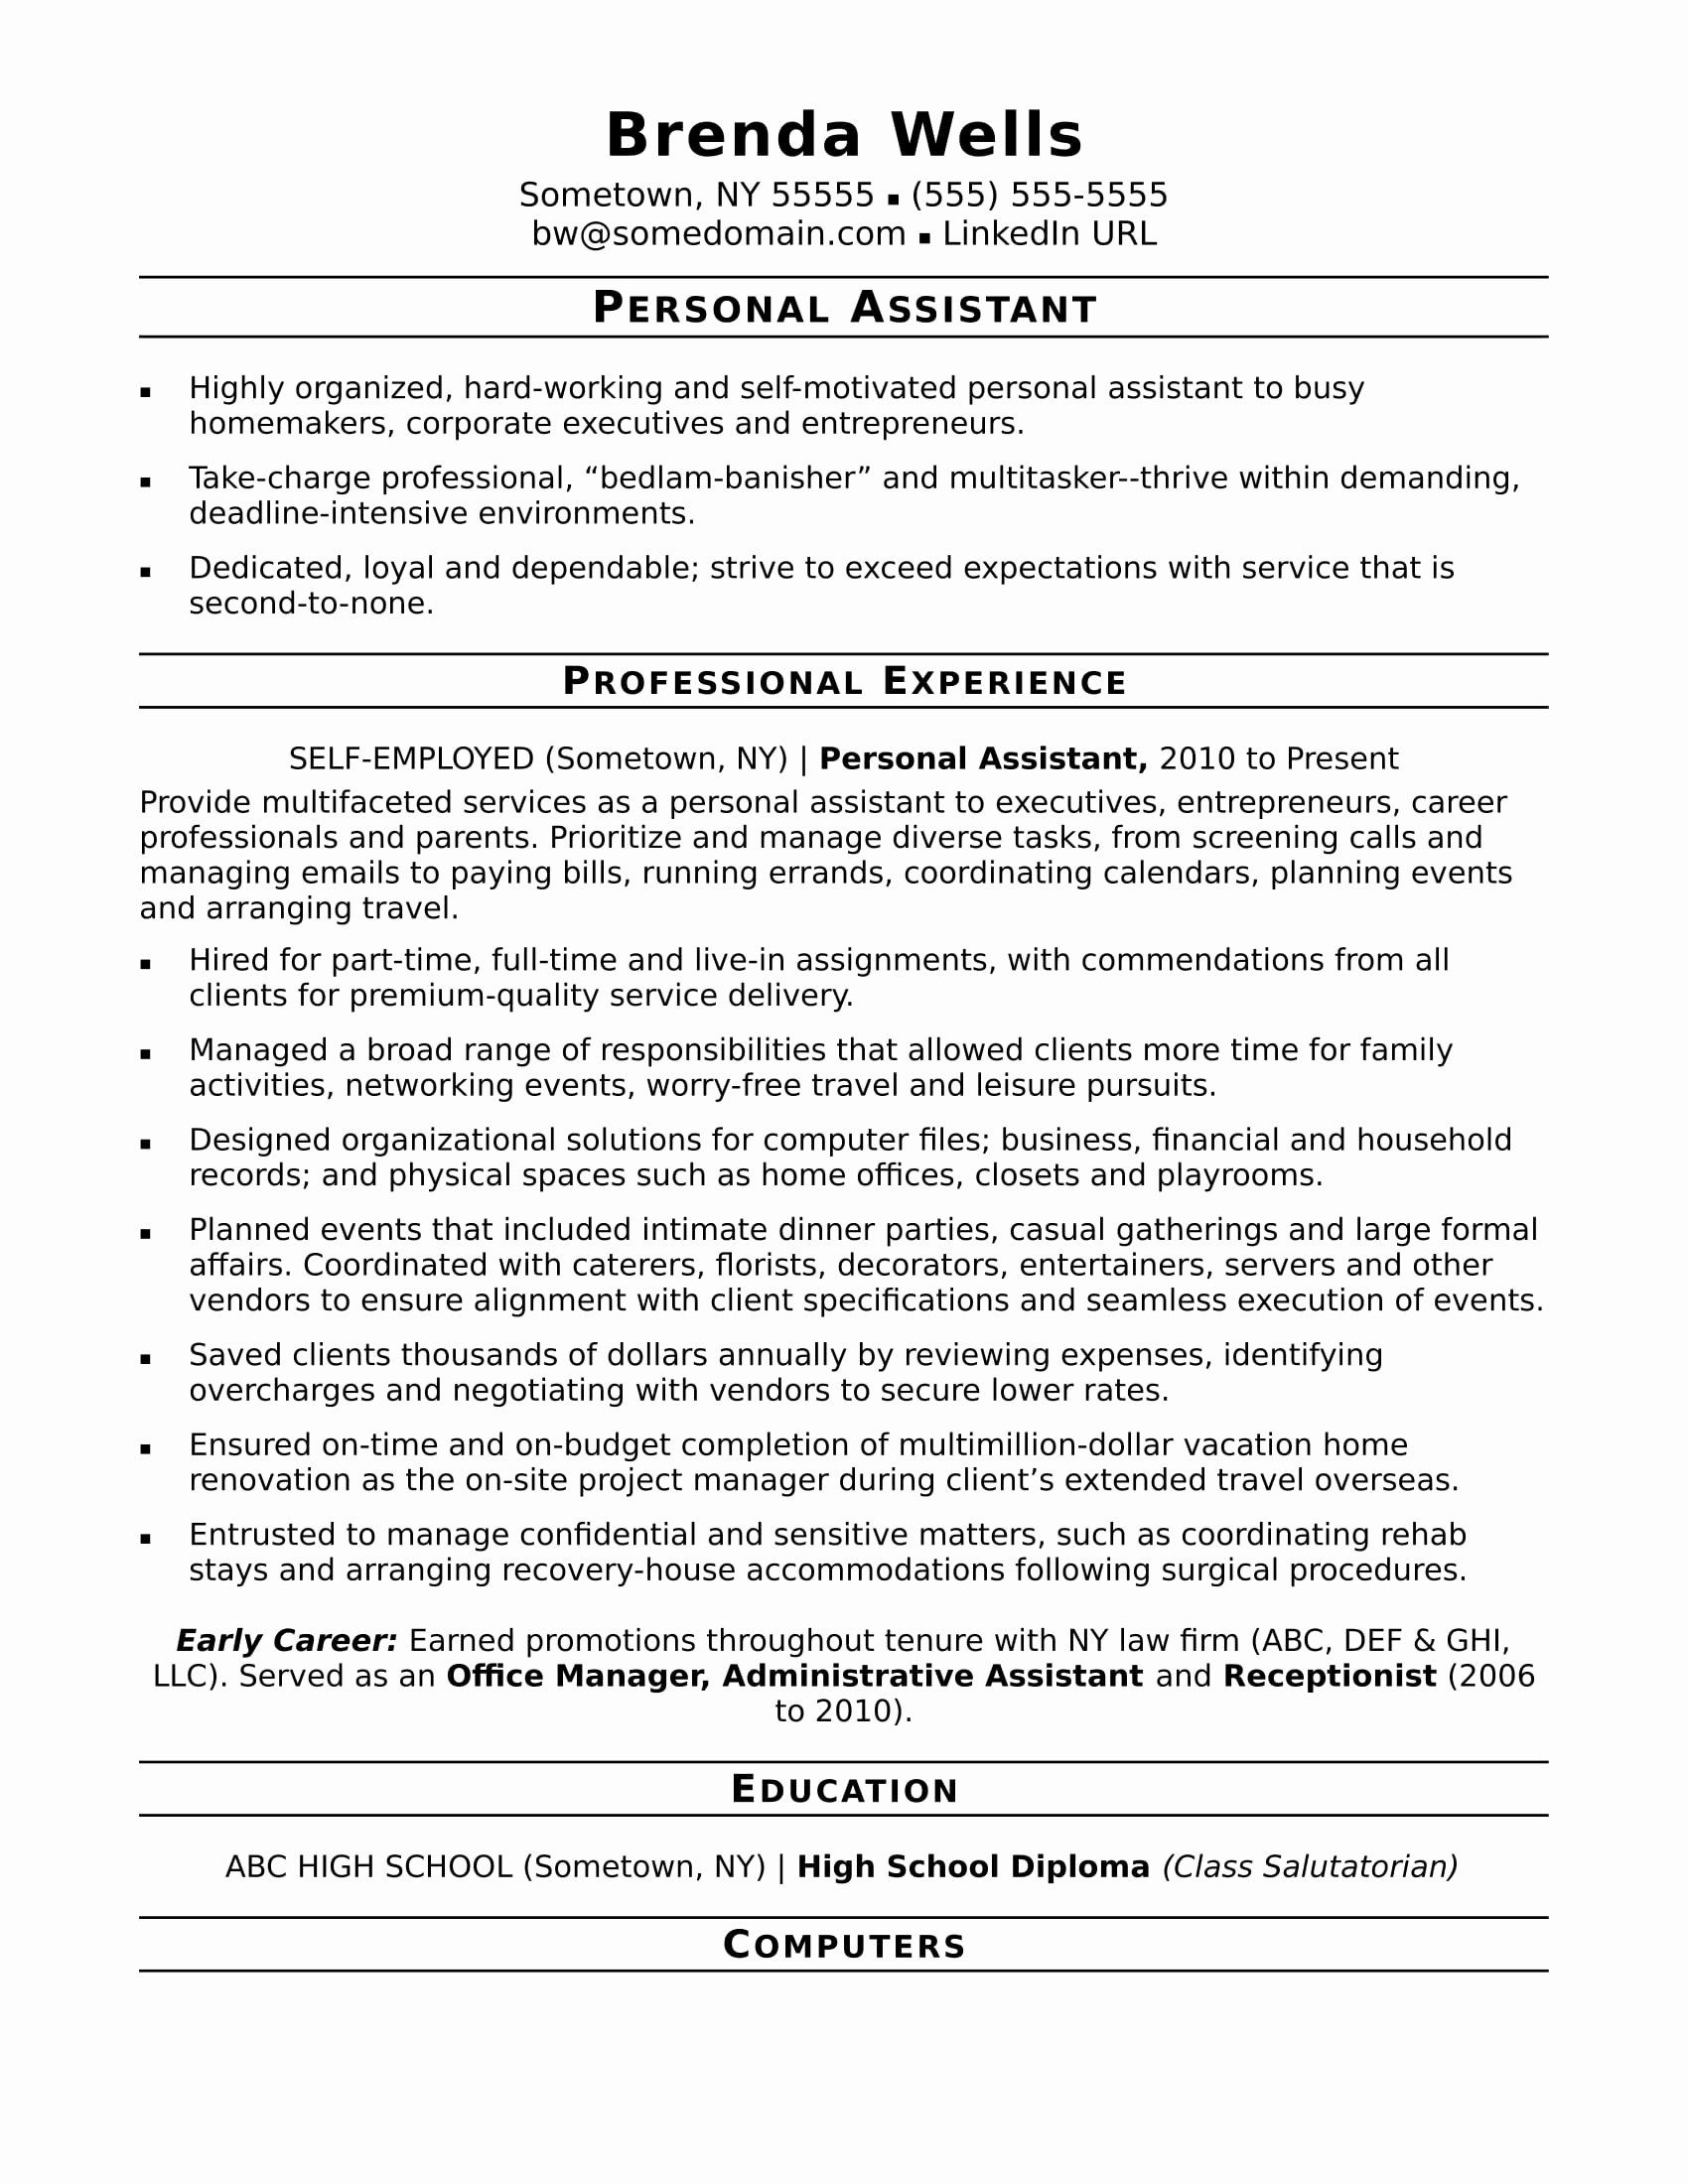 Personal Assistant Resume Example Awesome Sample Administrative Cover Letter Job Examples Administrator Statement